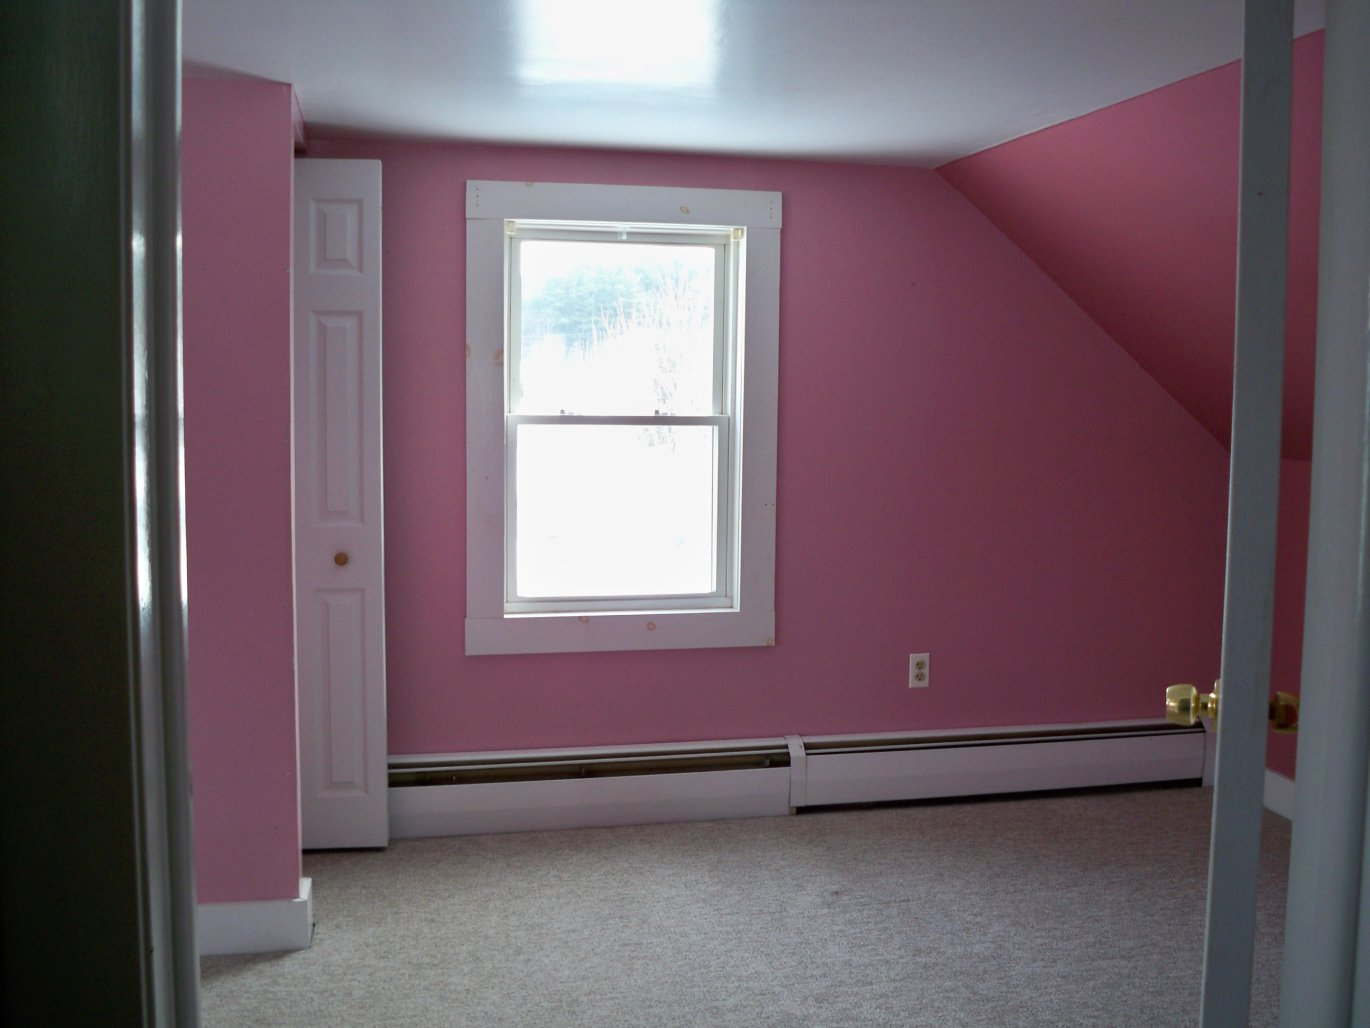 Paint Types Valspar Floor Door Sherwin Williams Home Interior Design And Decorating